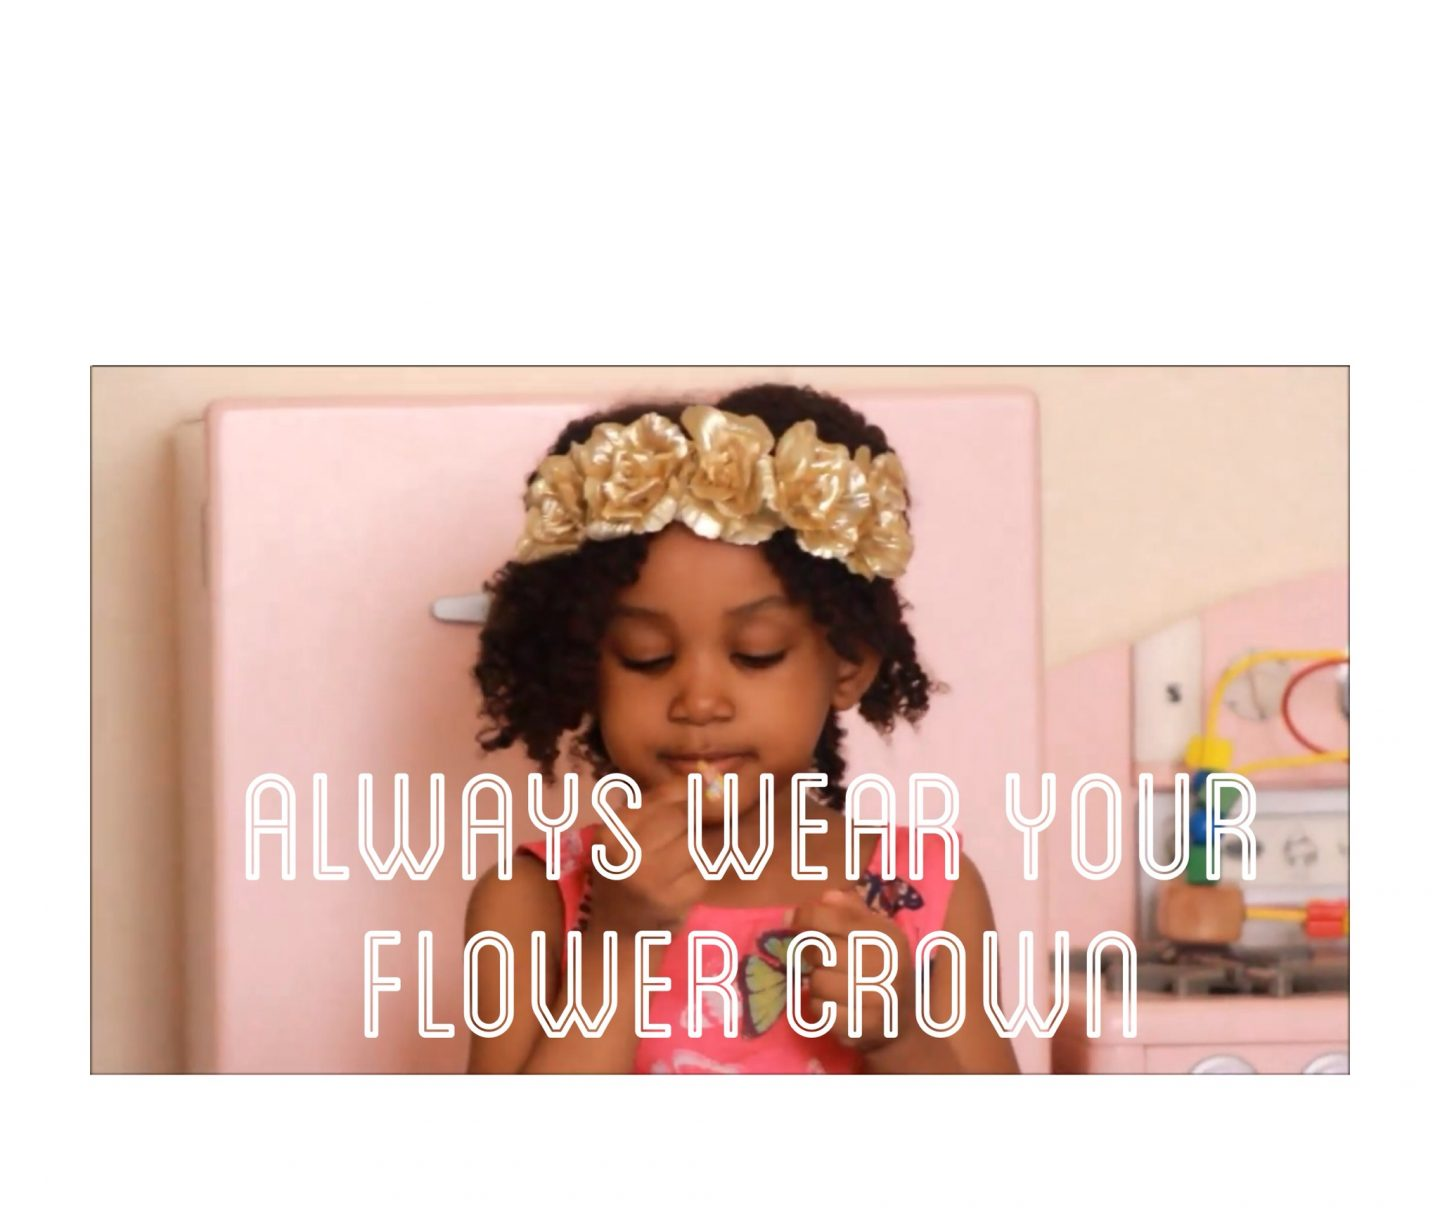 Always Wear Your Flower Crown